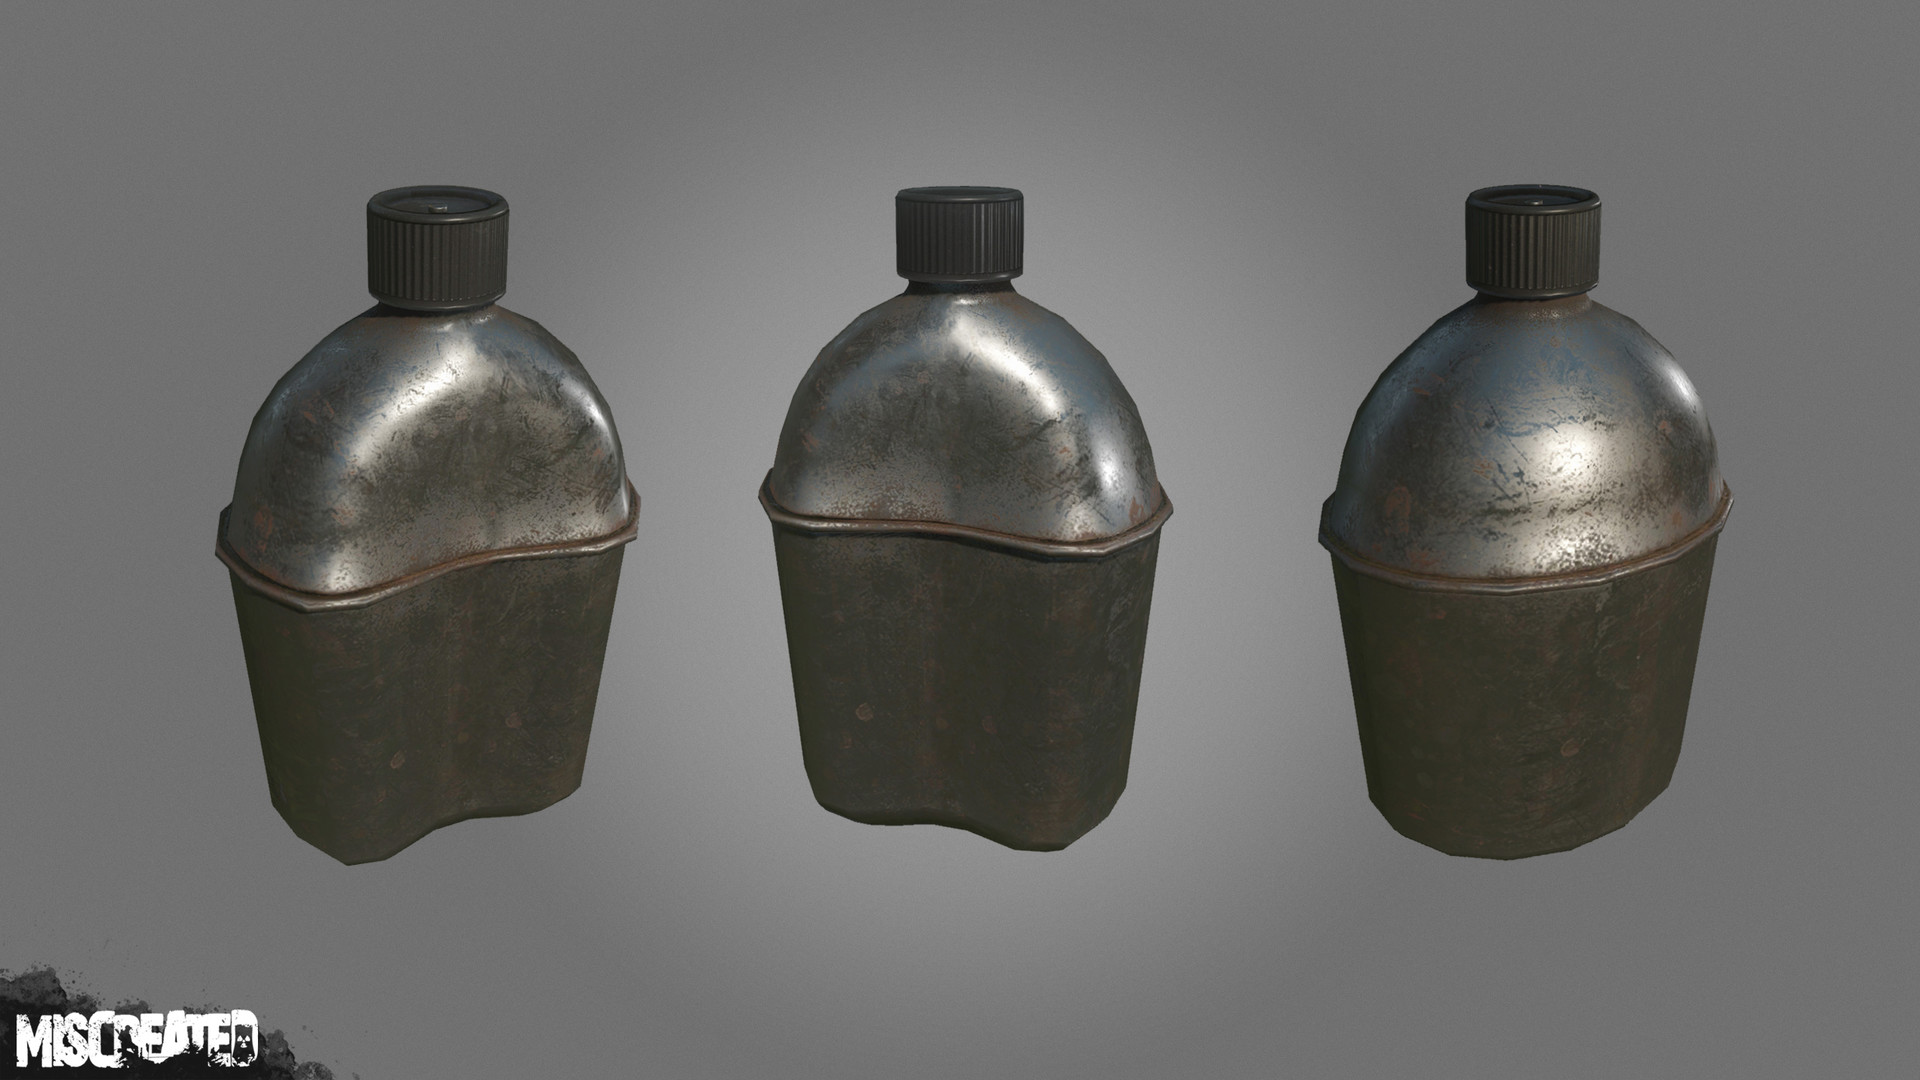 Military Canteen (Metal), used for carrying water